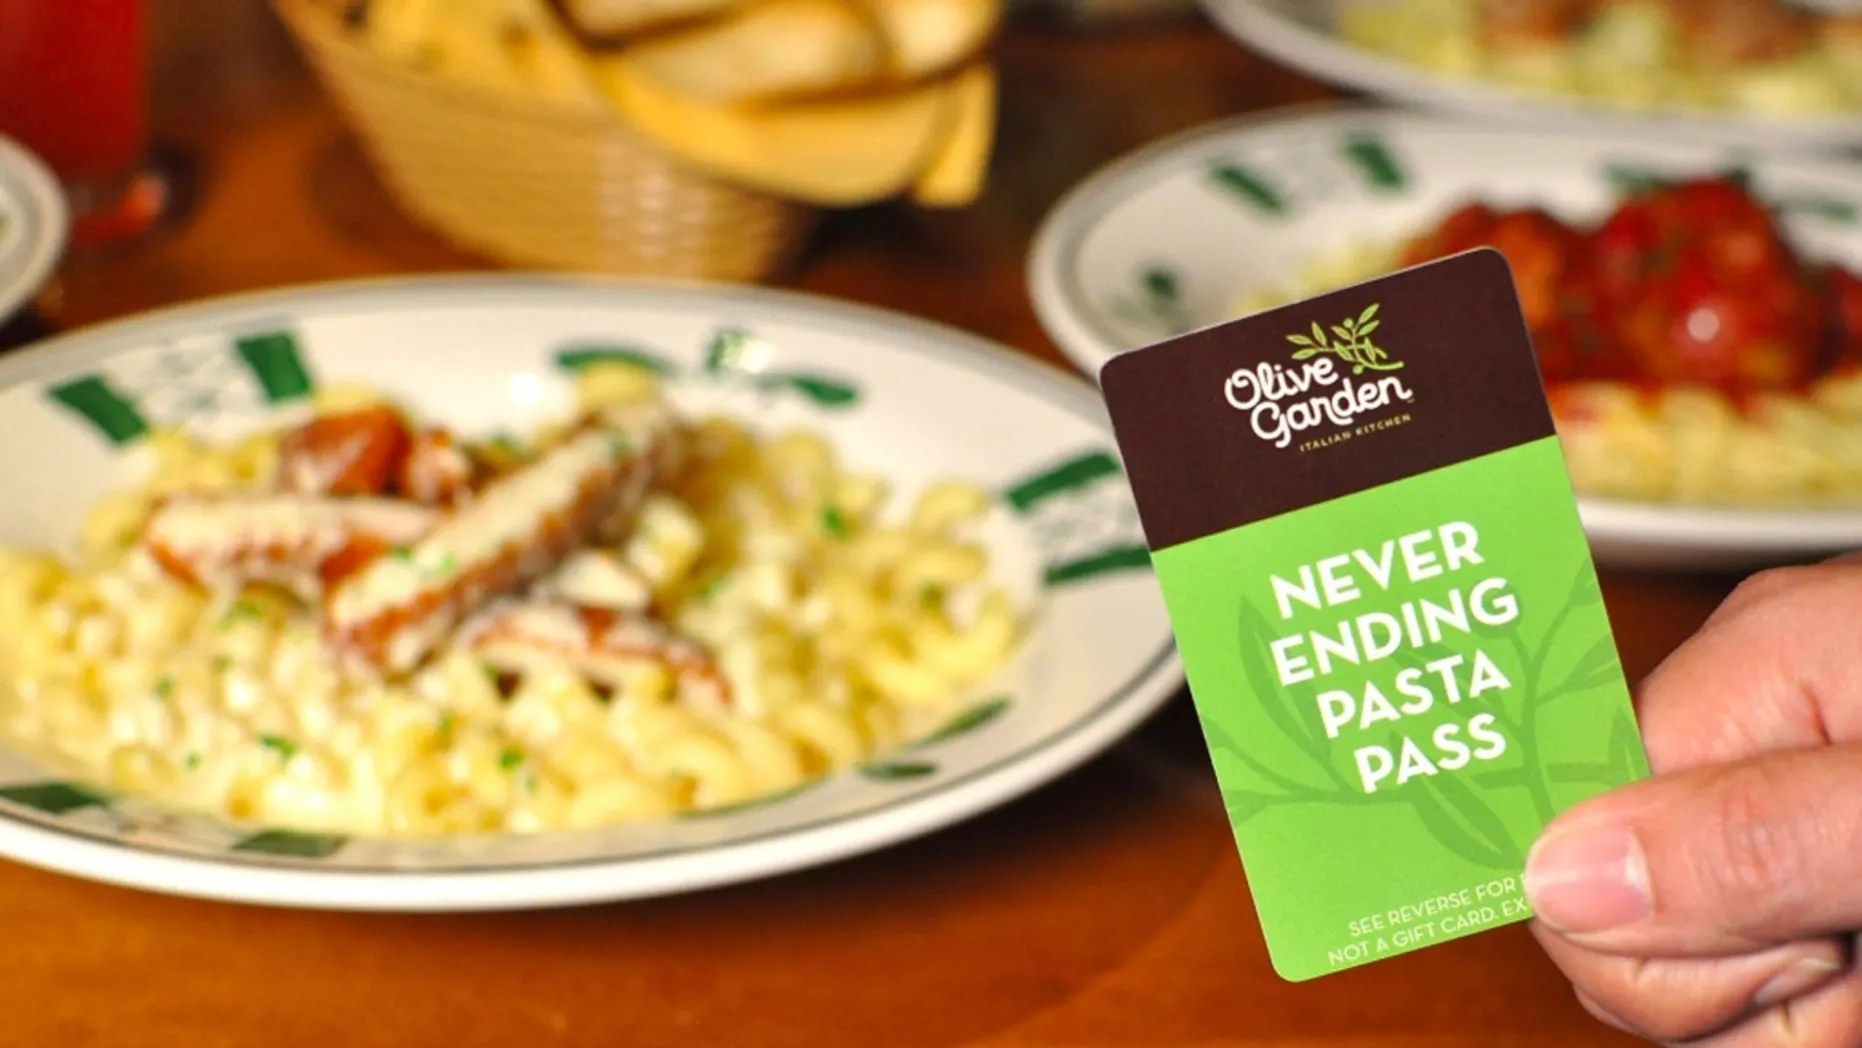 Eye A Olive Garden Almost Immediately S Passesthat Gave Olive Never Ending Pasta Pass S Out For Second Year One How Never Ending Pasta Pass Never Ending Pasta Bowl 2018 Dates nice food Never Ending Pasta